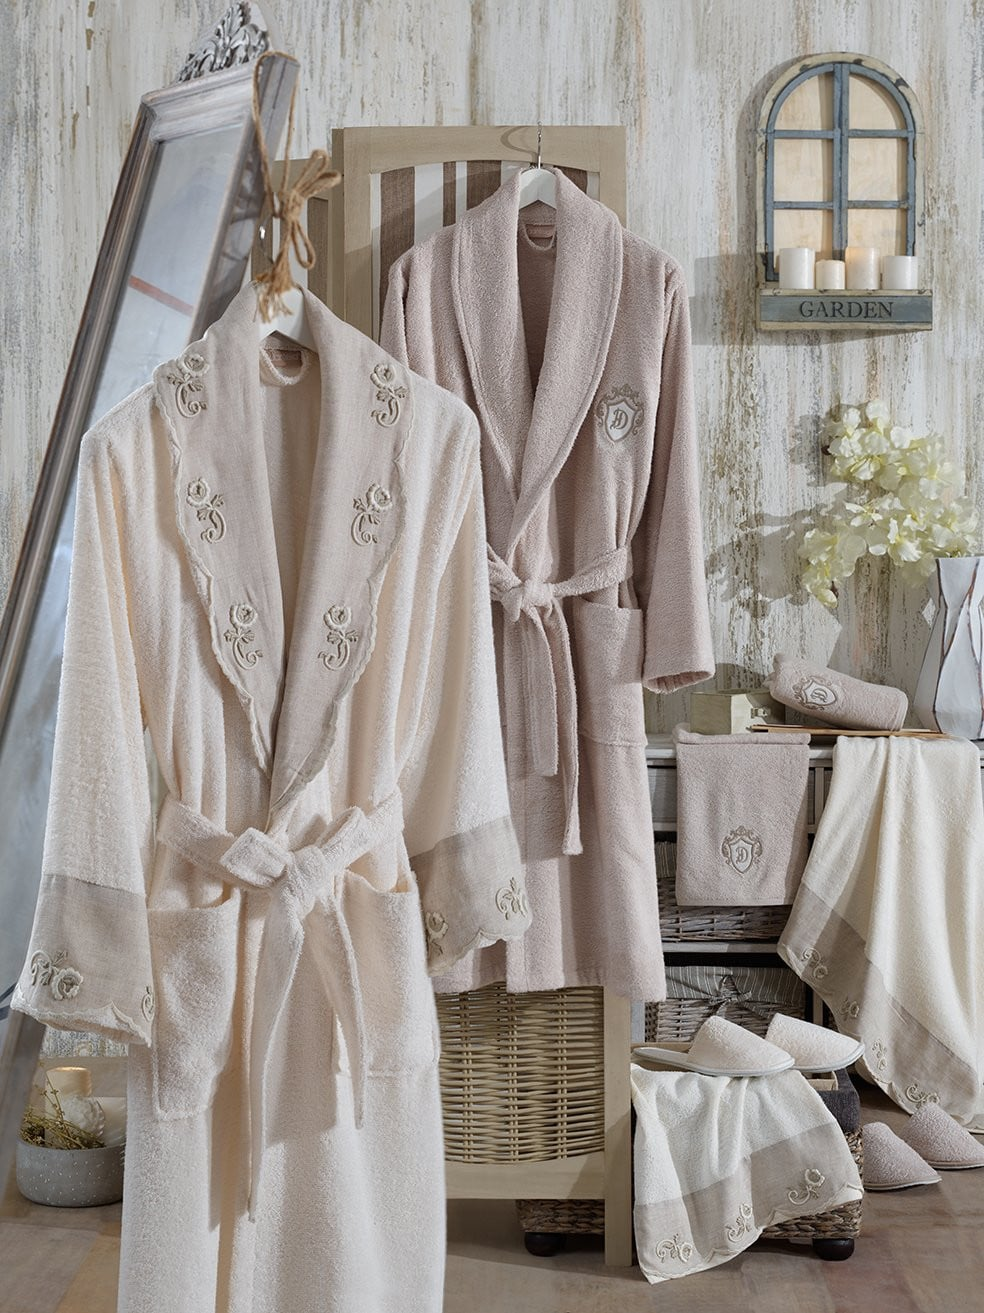 8PCS LINEN EMBROIDERIED BAMBOO BATHROBE FAMILY SET - COTTONISH